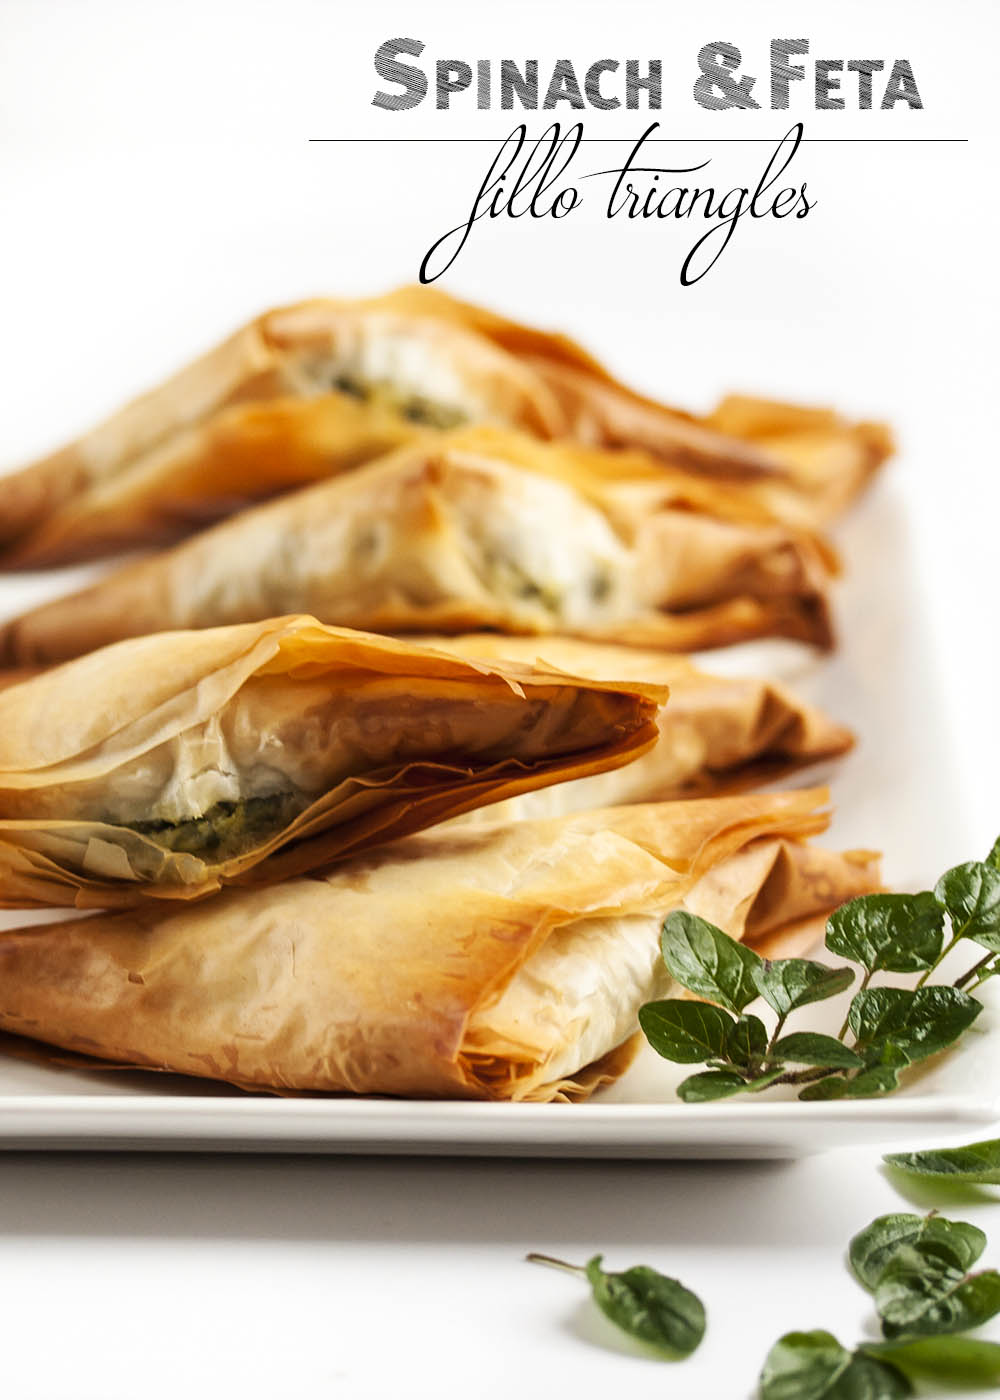 Spinach Feta Fillo Triangles - A great addition to a party or a fun side dish for a special meal, these Spinach Feta Triangles will be a hit with their classic combination of tasty spinach and salty, creamy cheese. | justalittlebitofbacon.com